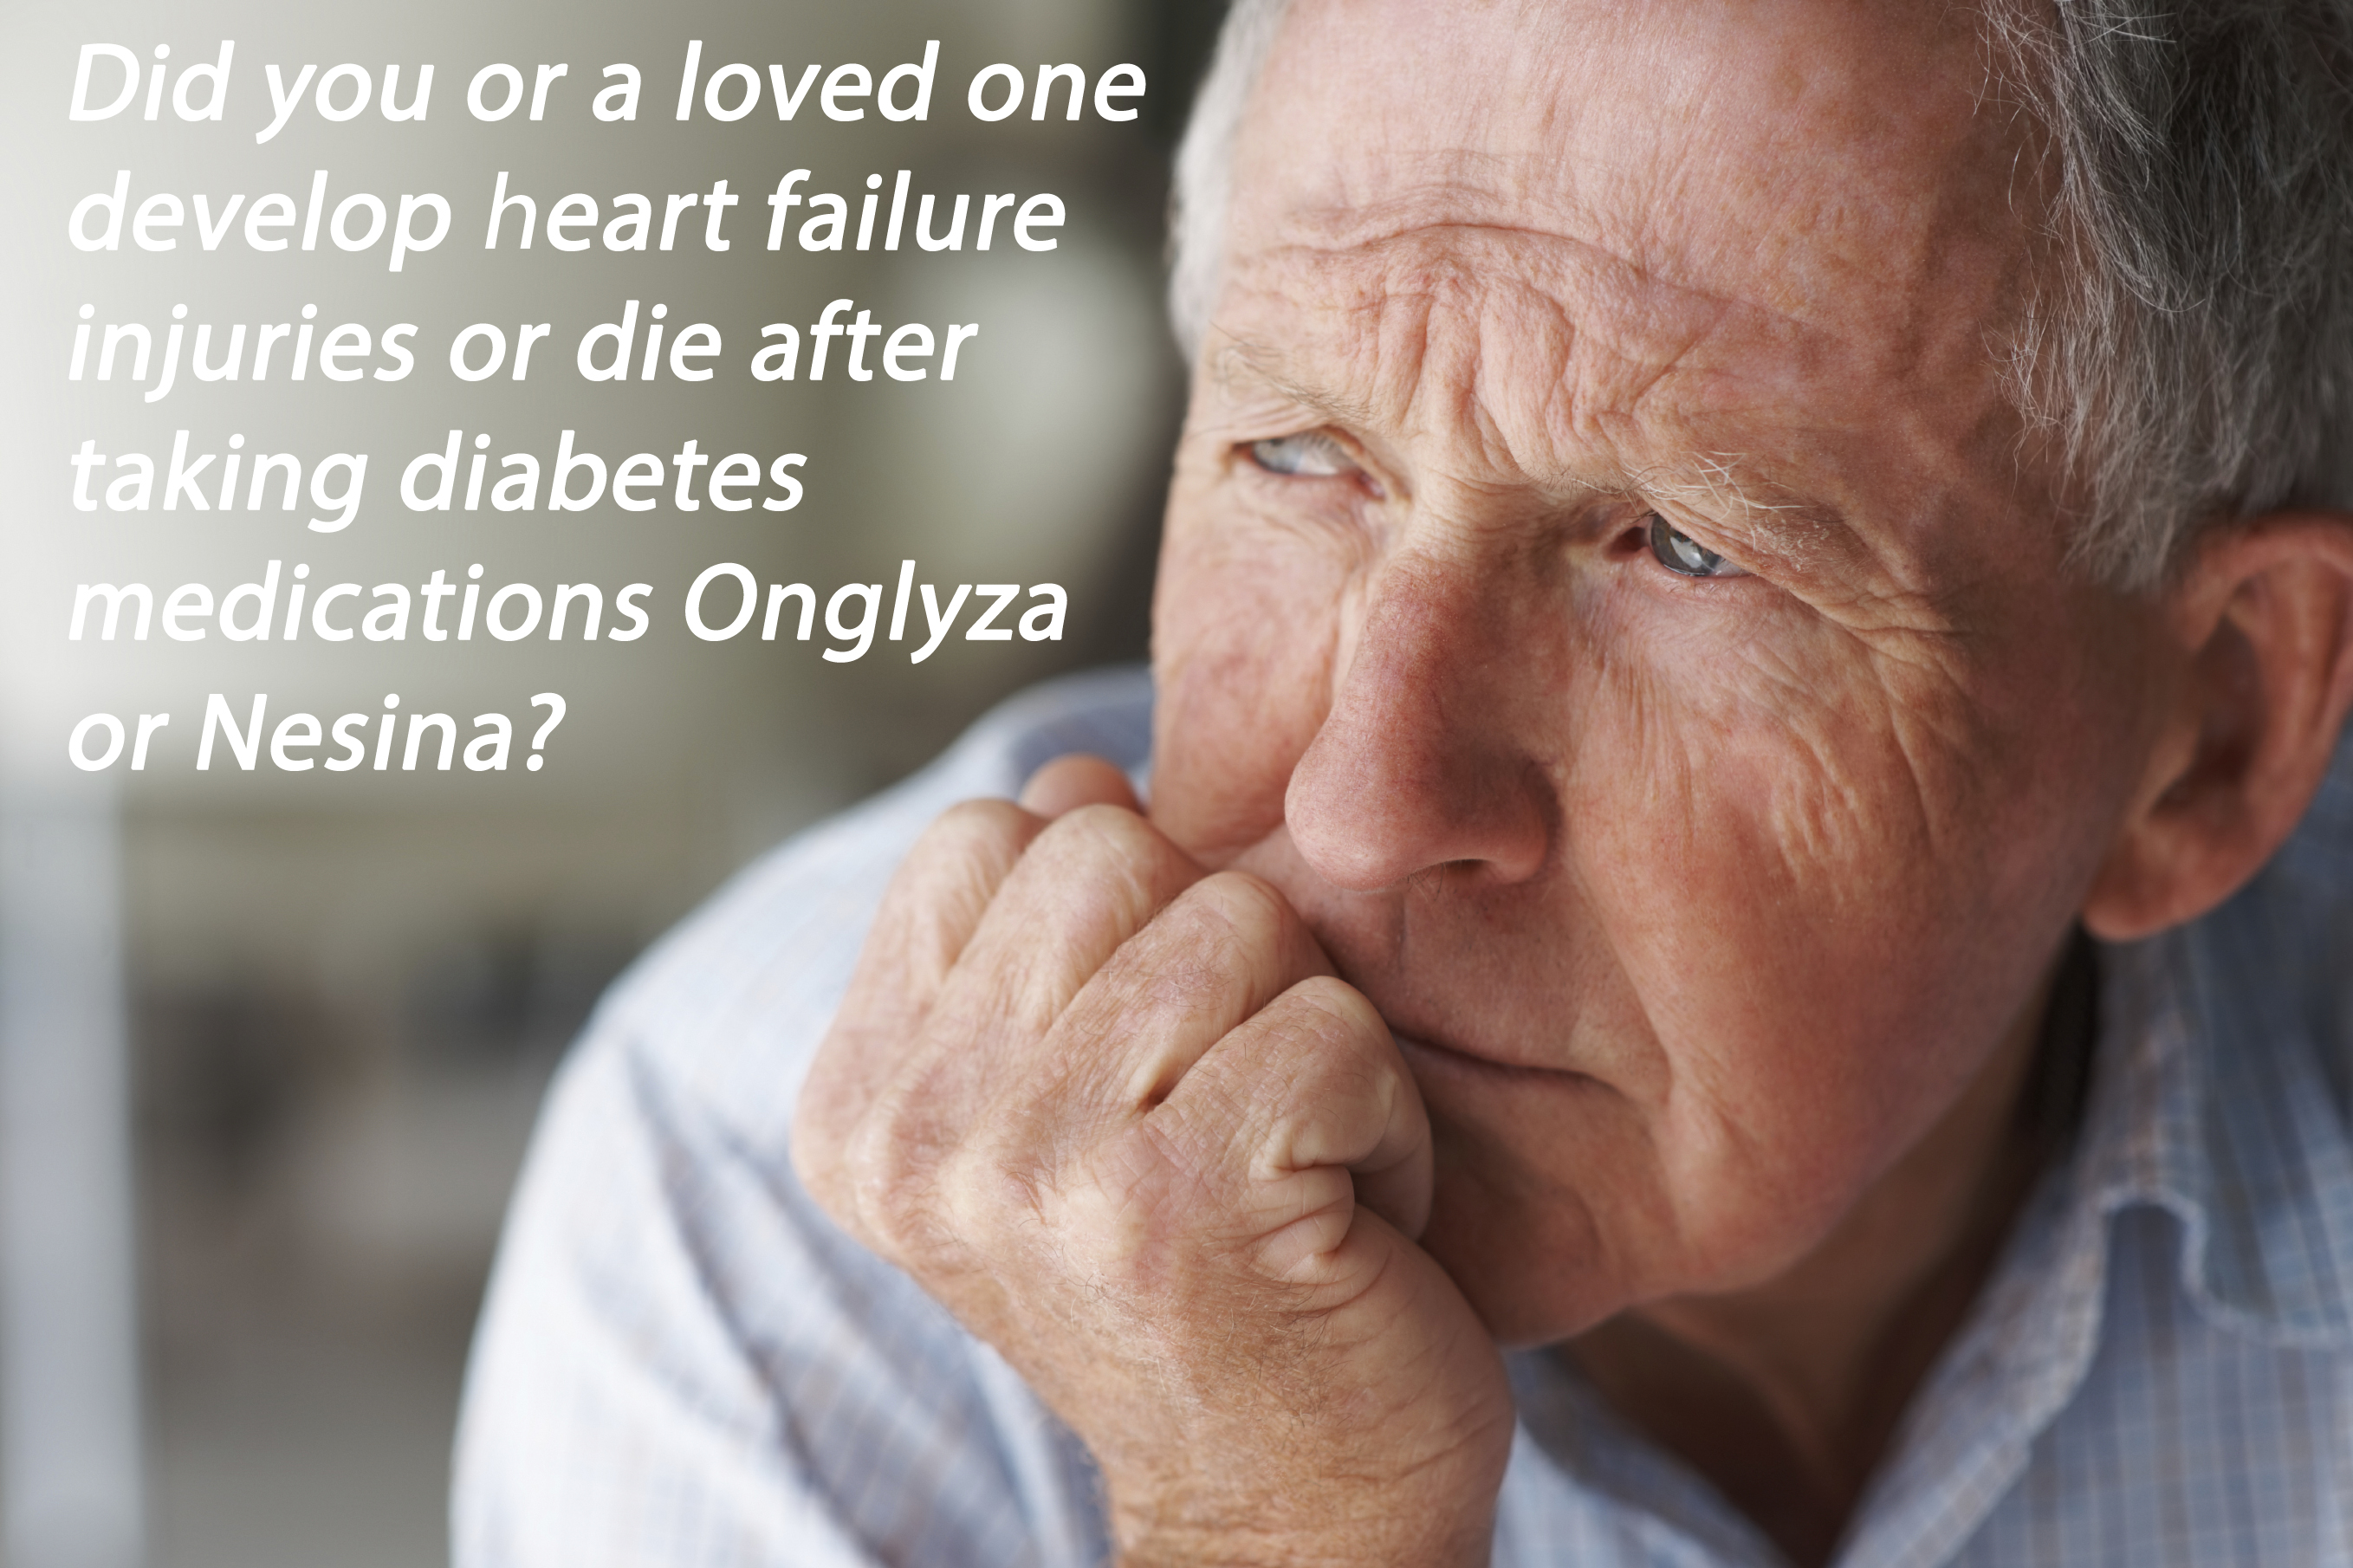 Did you or a loved one develop heart failure injuries or die after taking diabetes medications Onglyza or Nesina